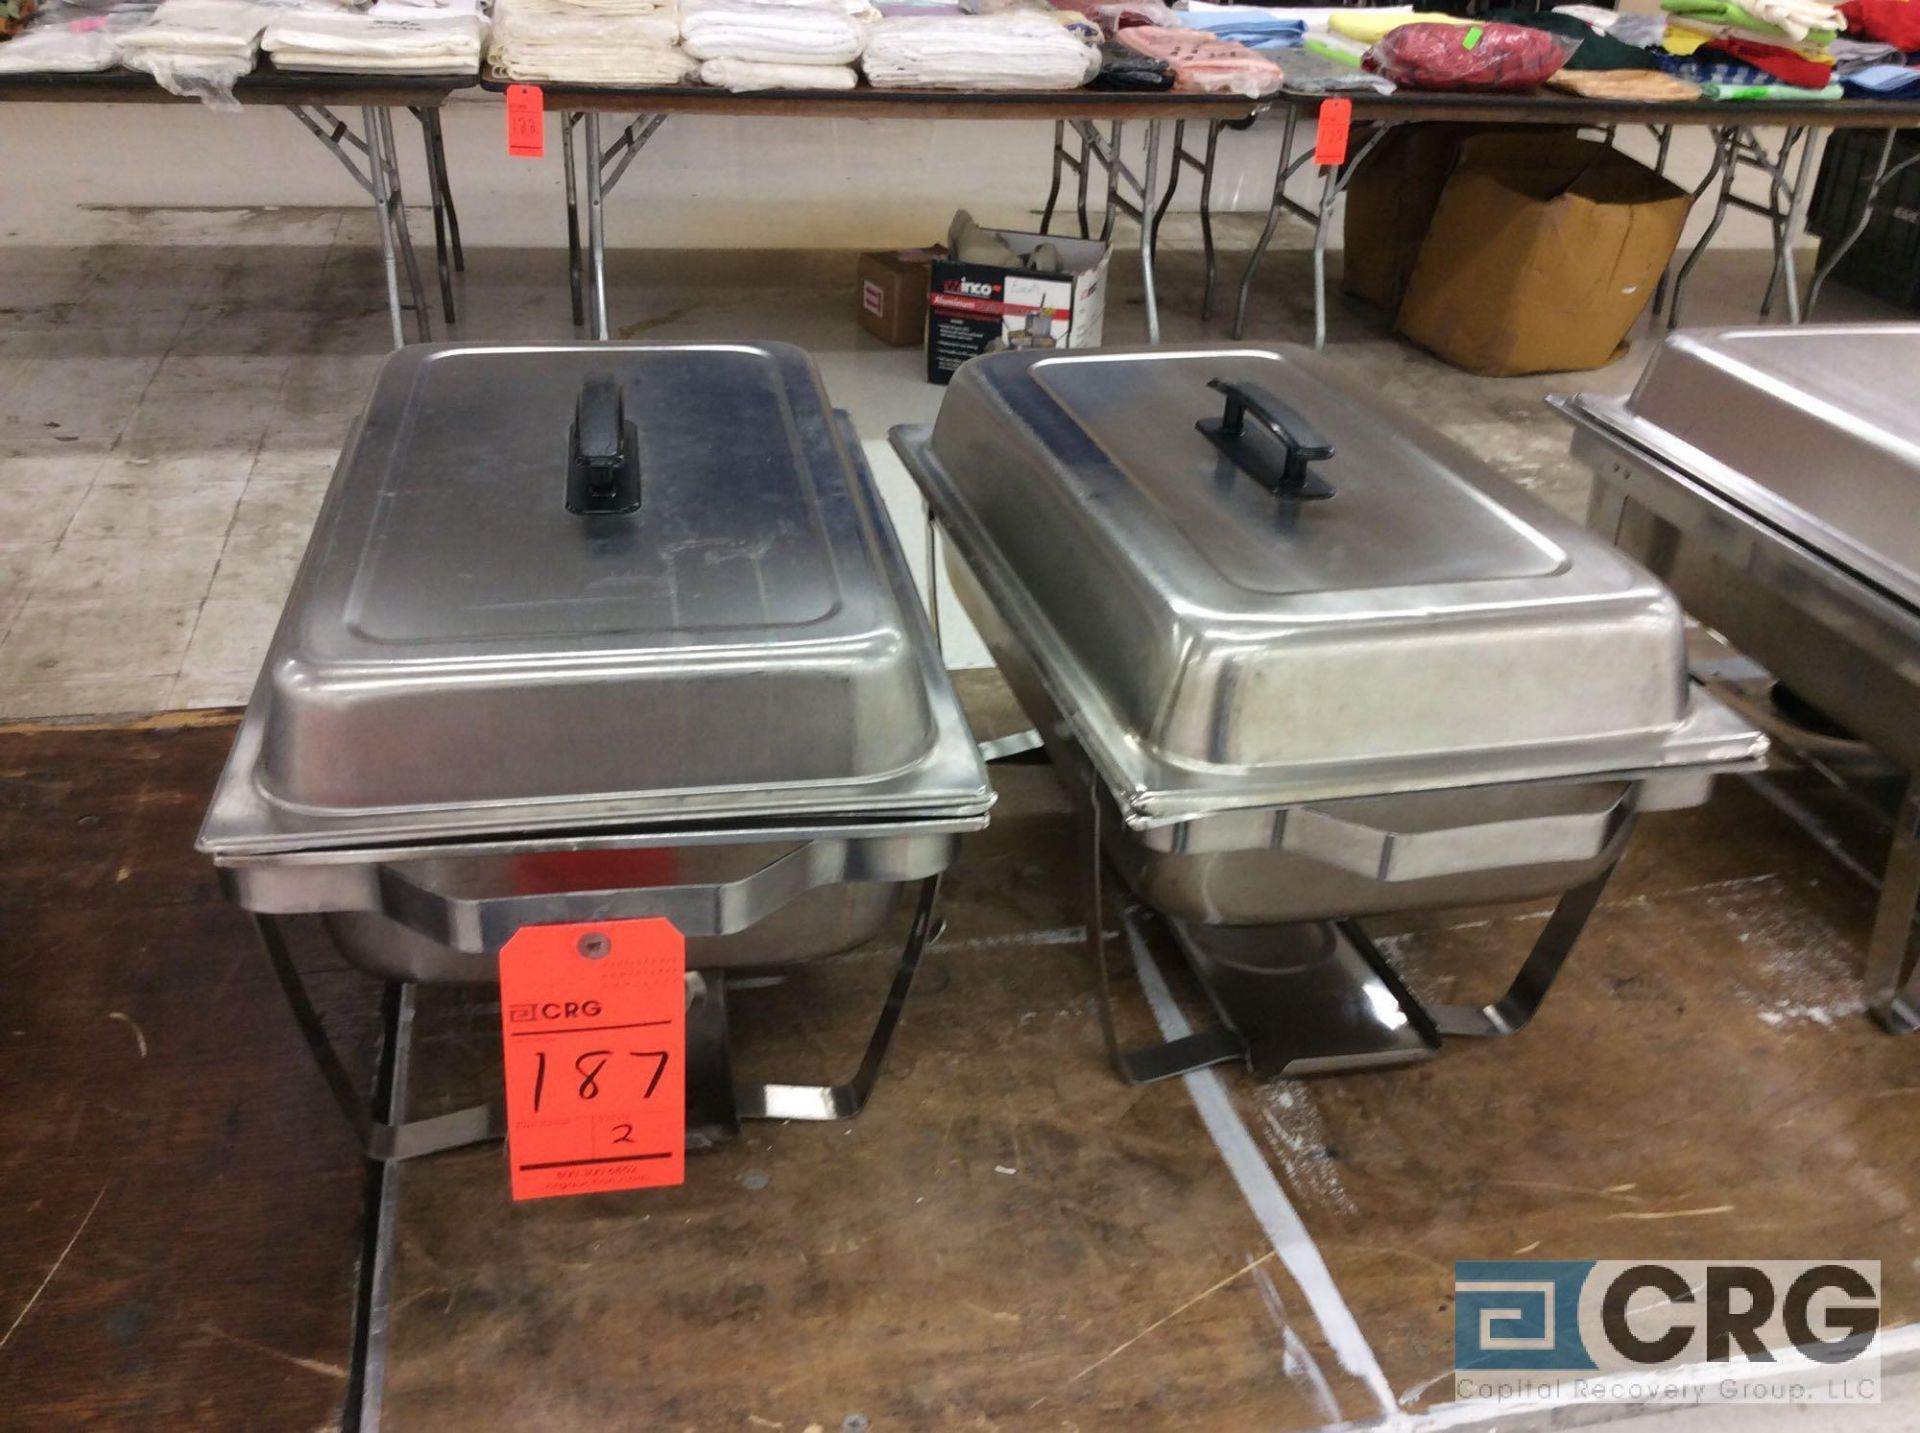 Lot 187 - Lot of (2) assorted SS chafers, each with stand, warming pan, food pan insert, and cover.